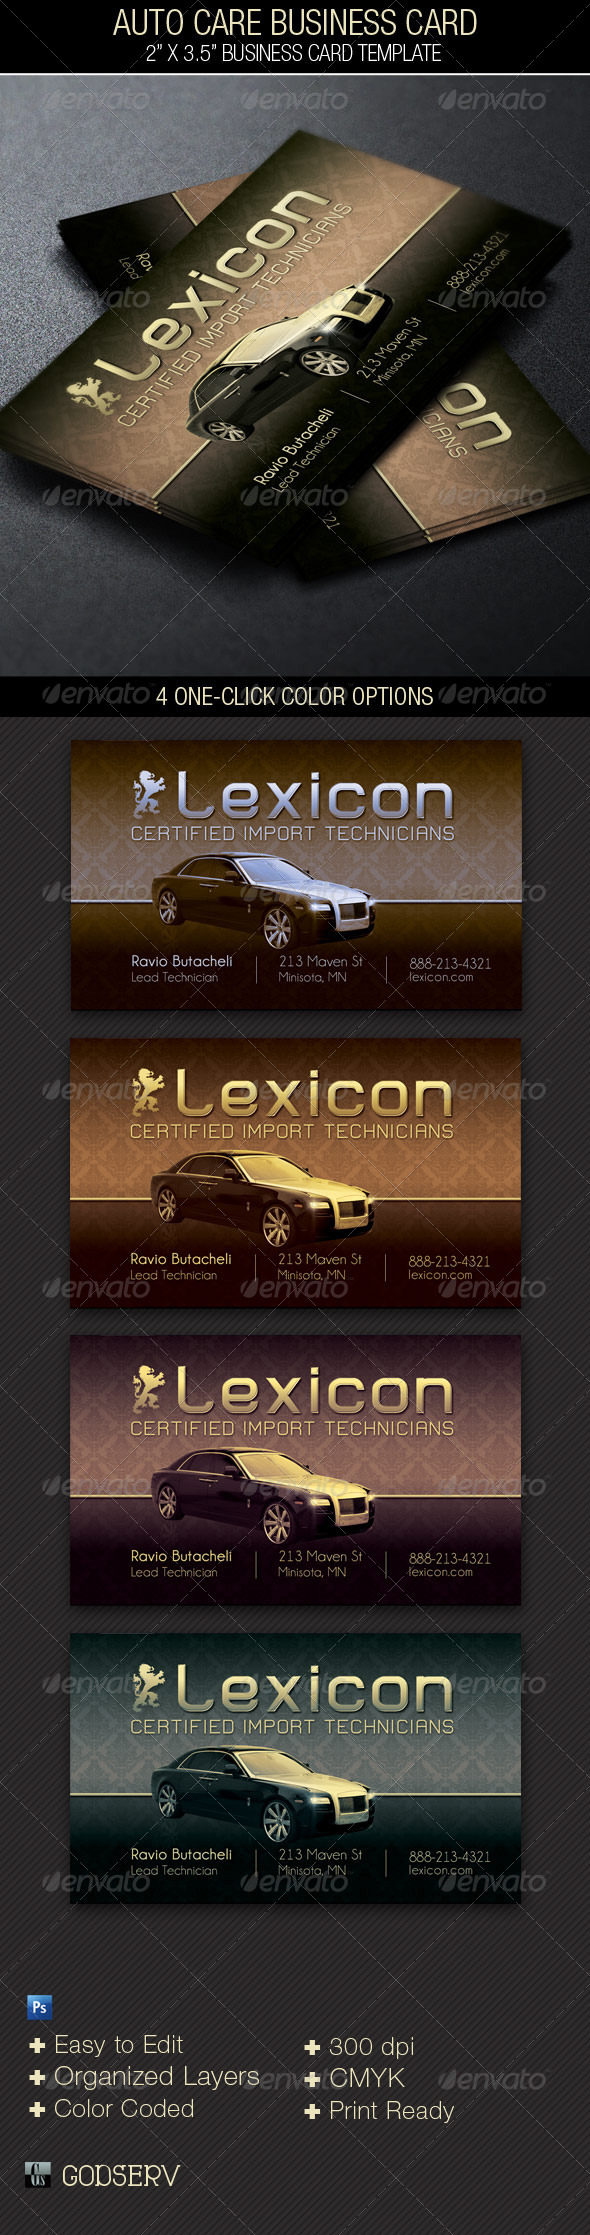 Towing Business Card Templates & Designs from GraphicRiver